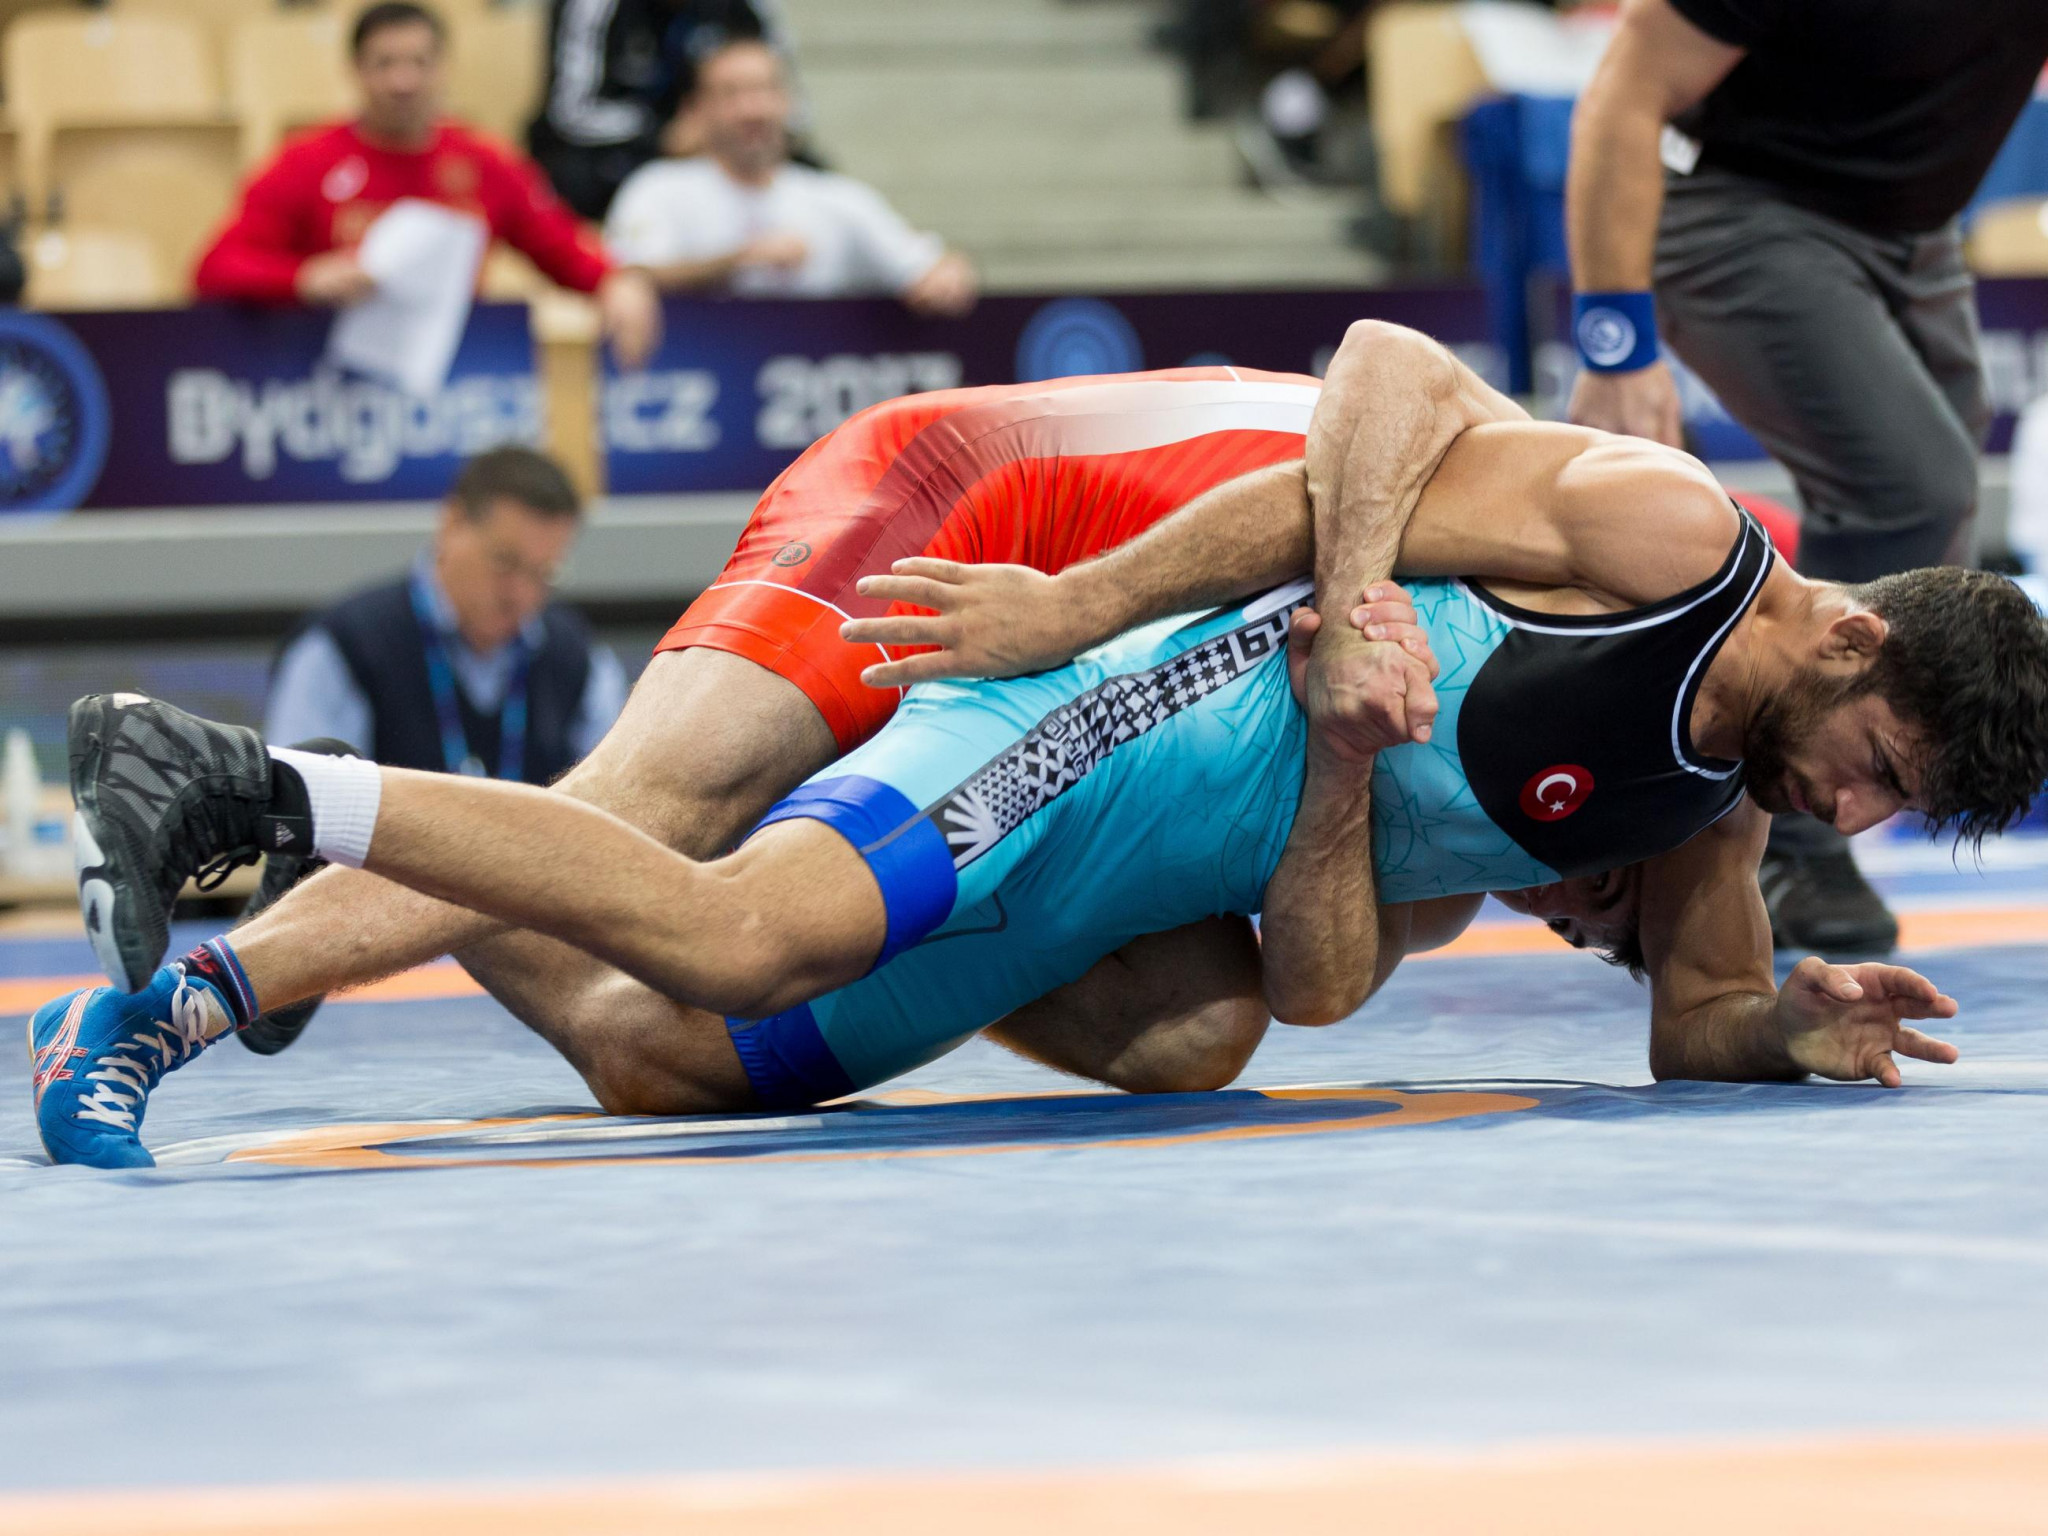 Semenov upsets the odds to beat Pataridze in 130kg event at the Under-23 World Wrestling Championships